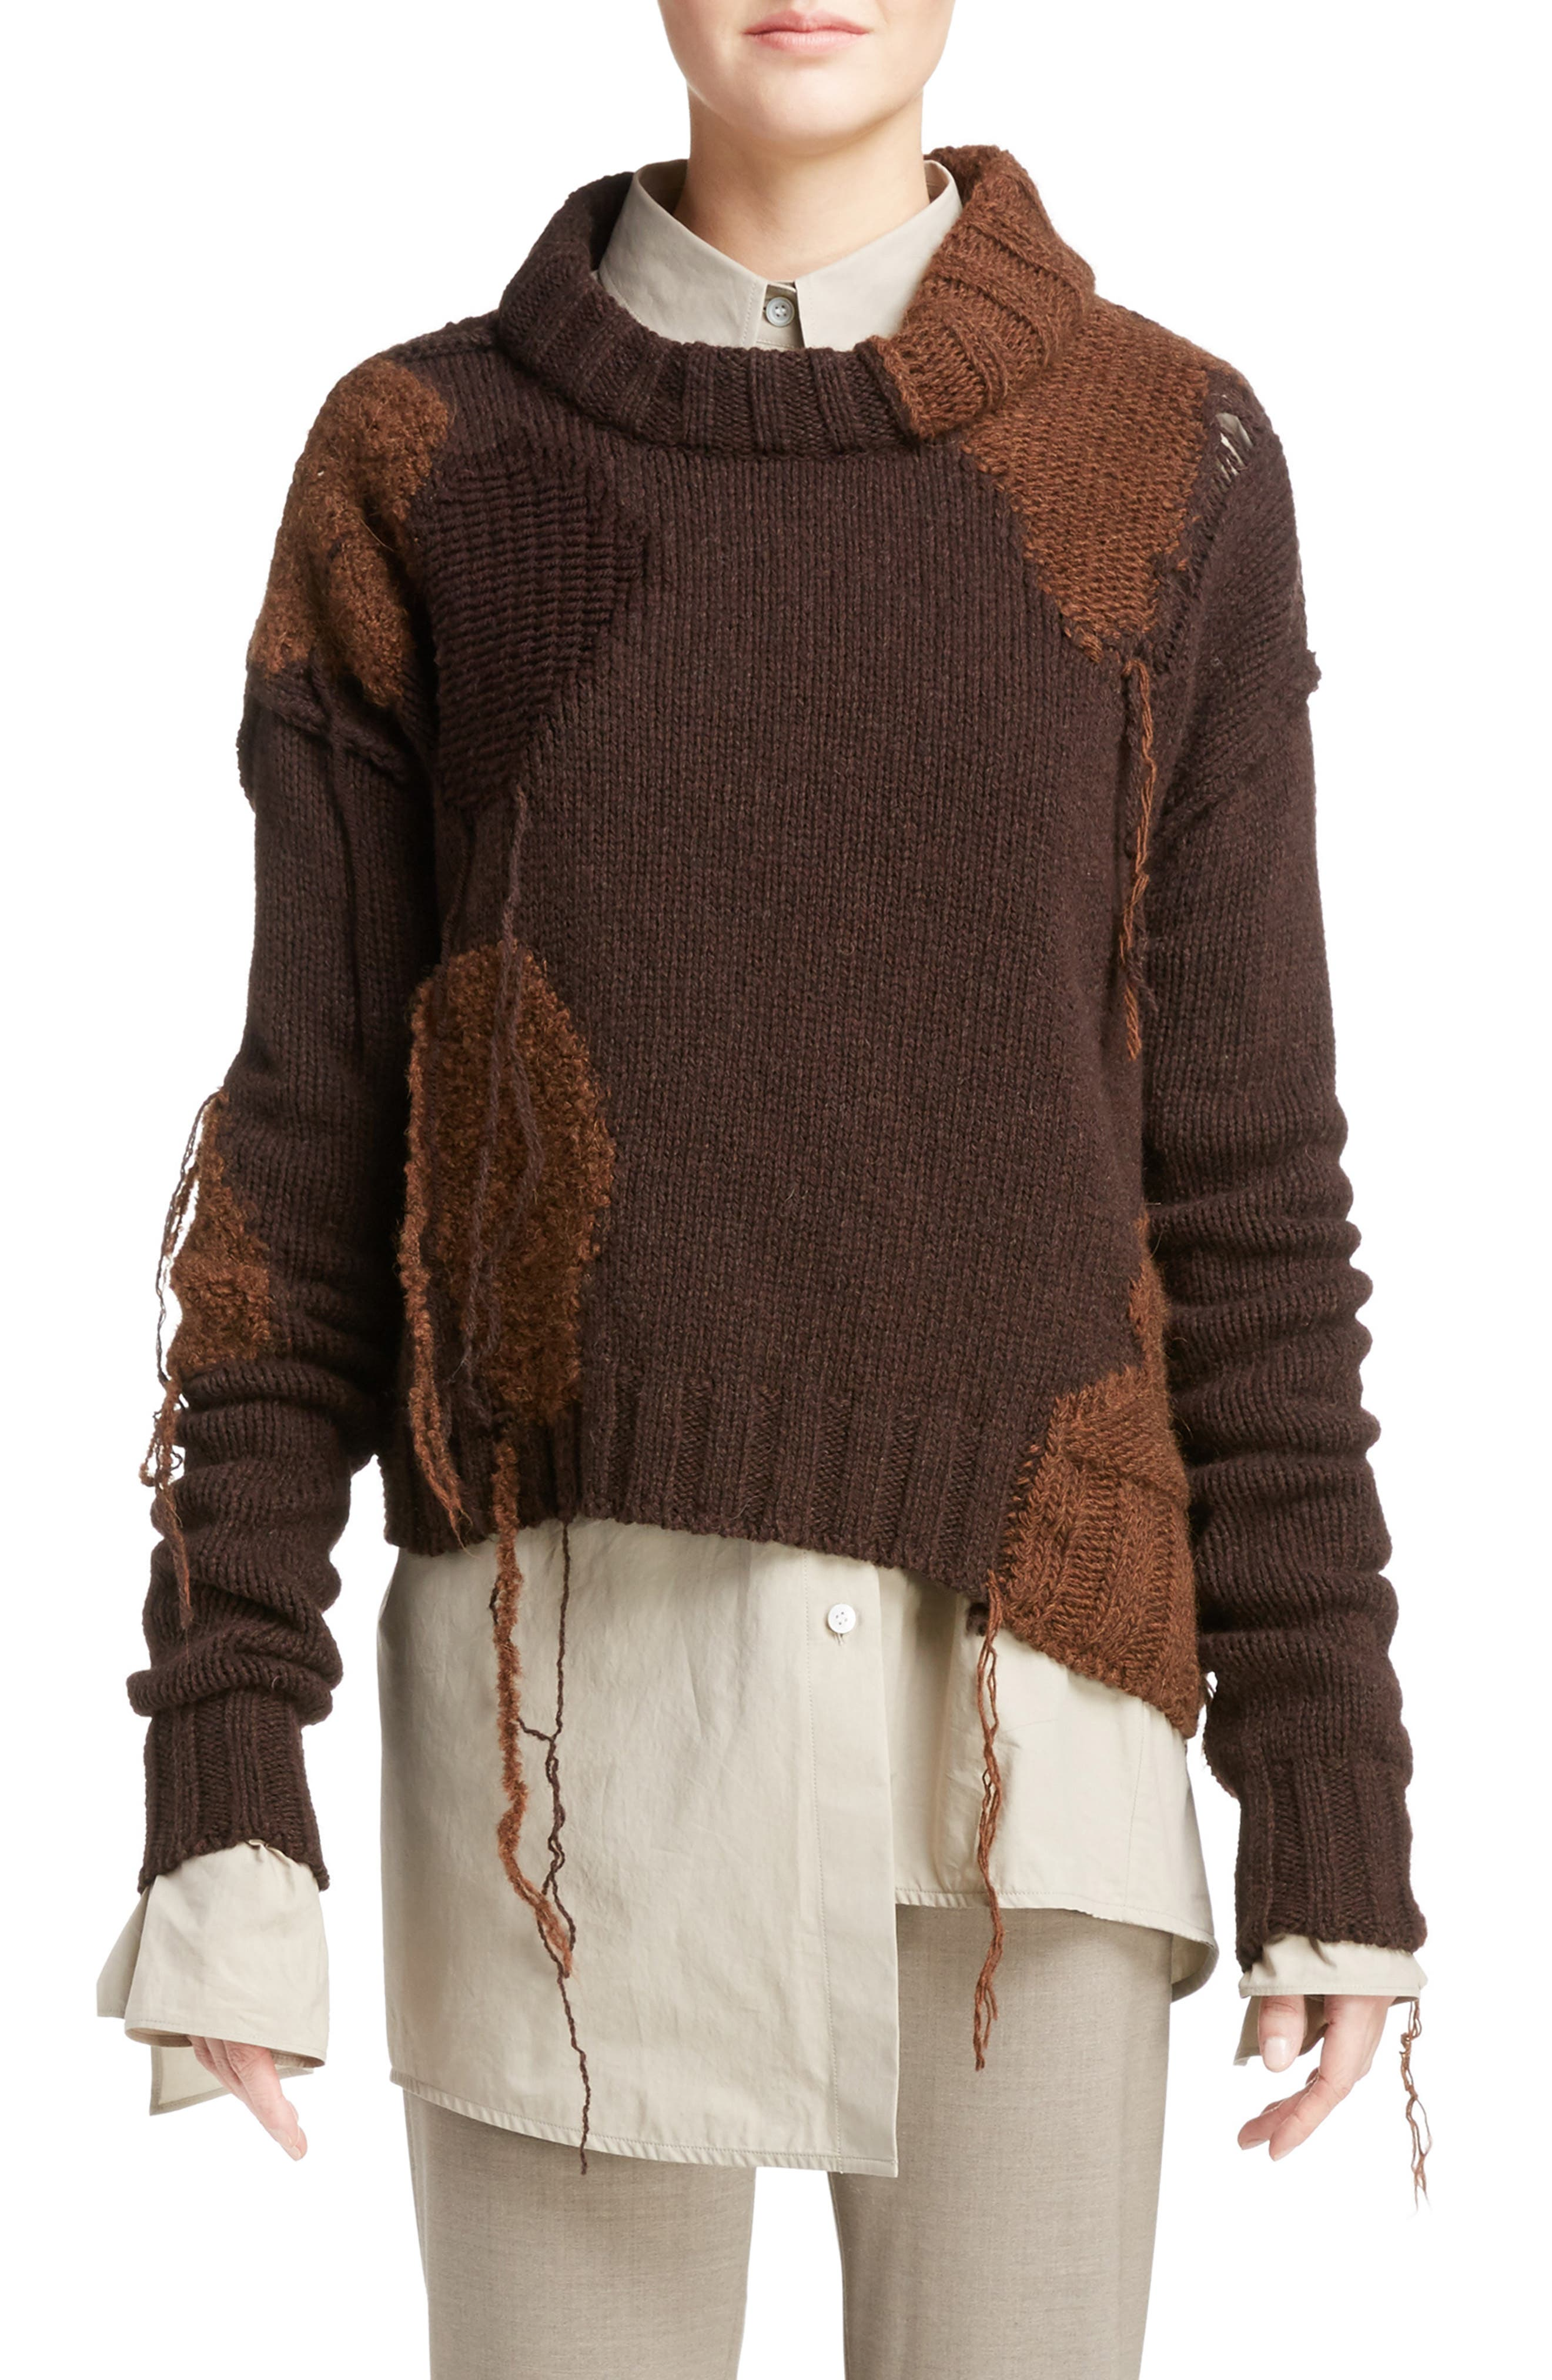 Ovira Distressed Patchwork Sweater,                             Main thumbnail 1, color,                             Brown Combo